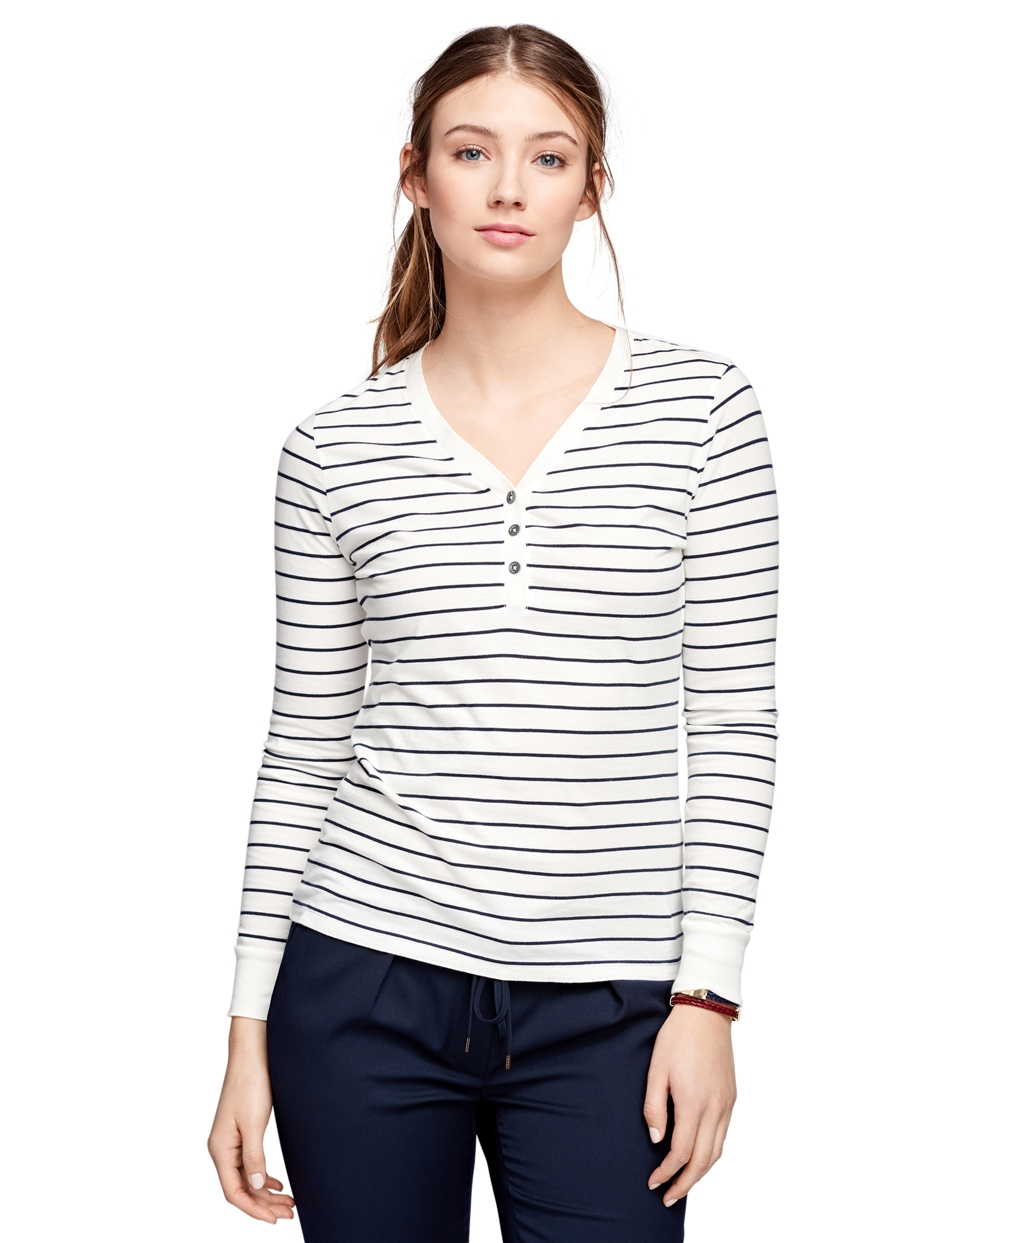 Shop online for L&L Striped Henley T-Shirt. Find Tops & Blouses, Clothing and more at Additionelle Bought in the Black & White, and Sea Turtle, which is white with olive green stripes and trim. Love the fit in my usual size 3X. I am rather large busted and it fits me perfectly. Also love the 3/4 sleeves, the button front, and shirt bottom.